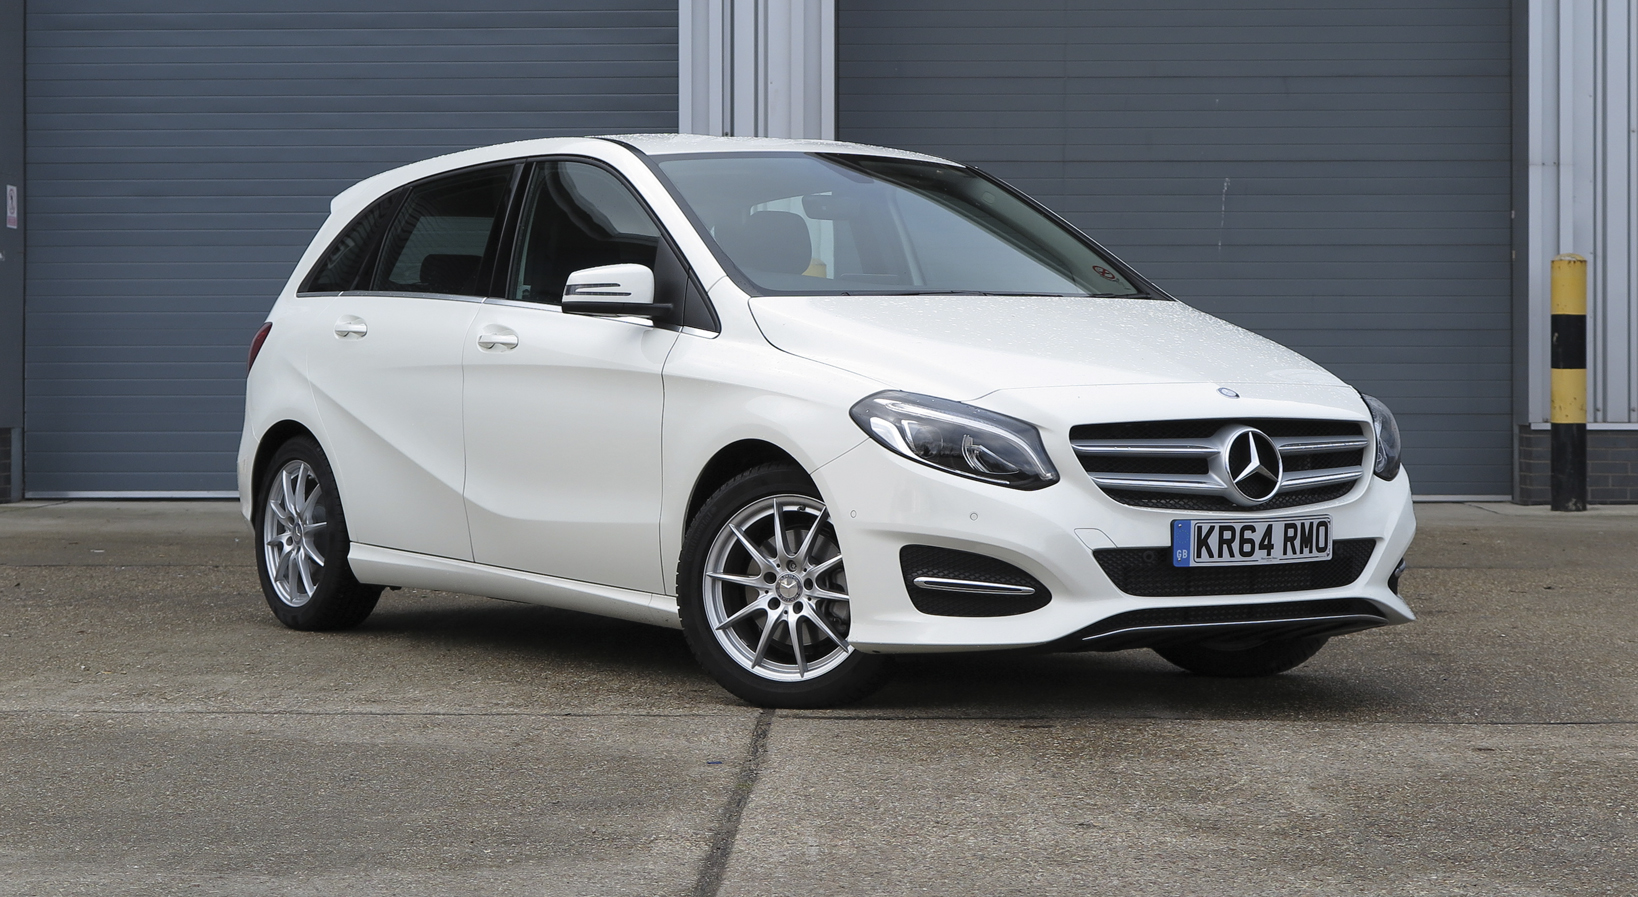 60 second on test report 2015 mercedes benz b 200 d for Mercedes benz second